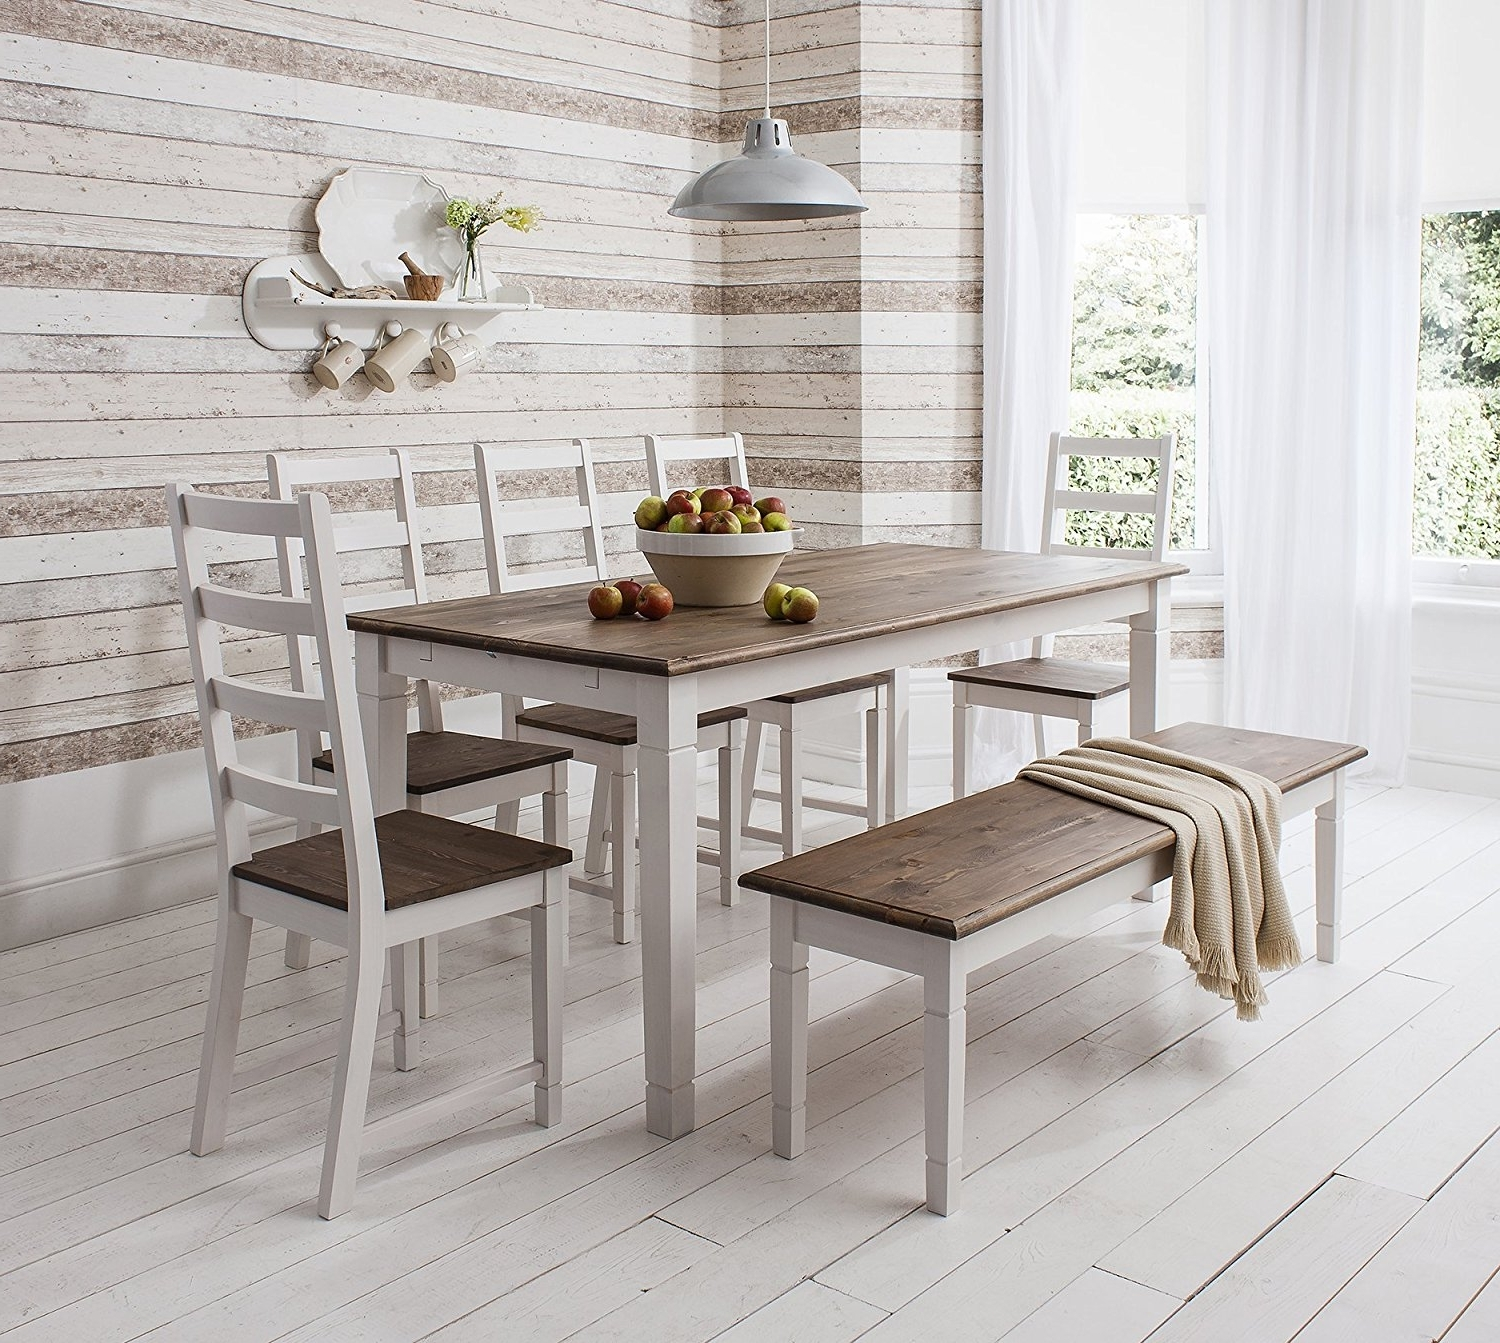 Dining Room New Dining Table And Chairs The Best Dining Room Sets pertaining to Most Current Dining Room Tables And Chairs